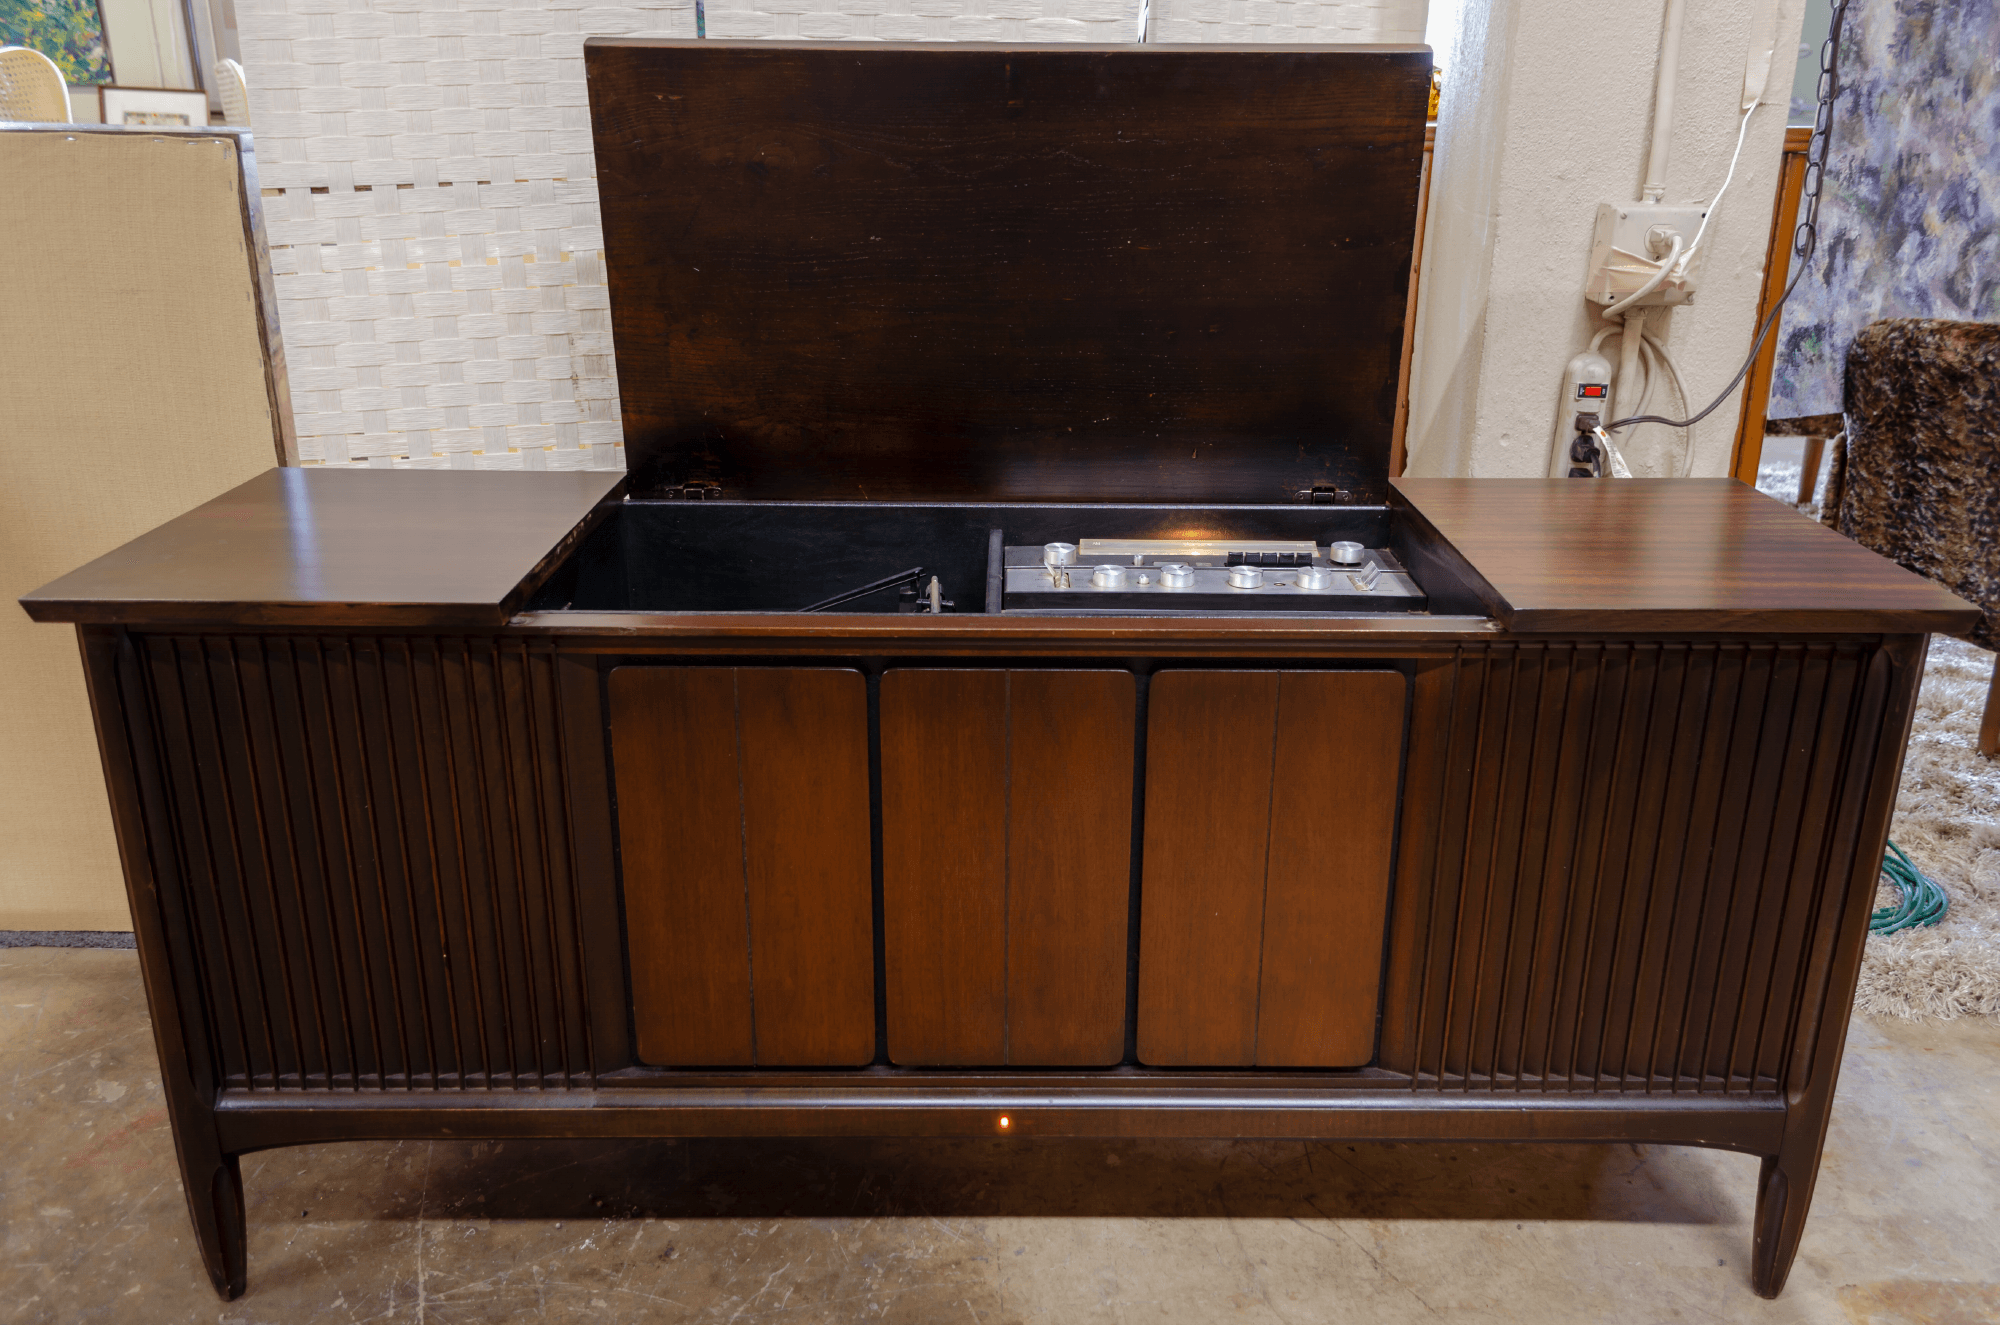 1960u0027s Mahogany Claritone Stereo Cabinet. Model #8131. This Is A Working Am/